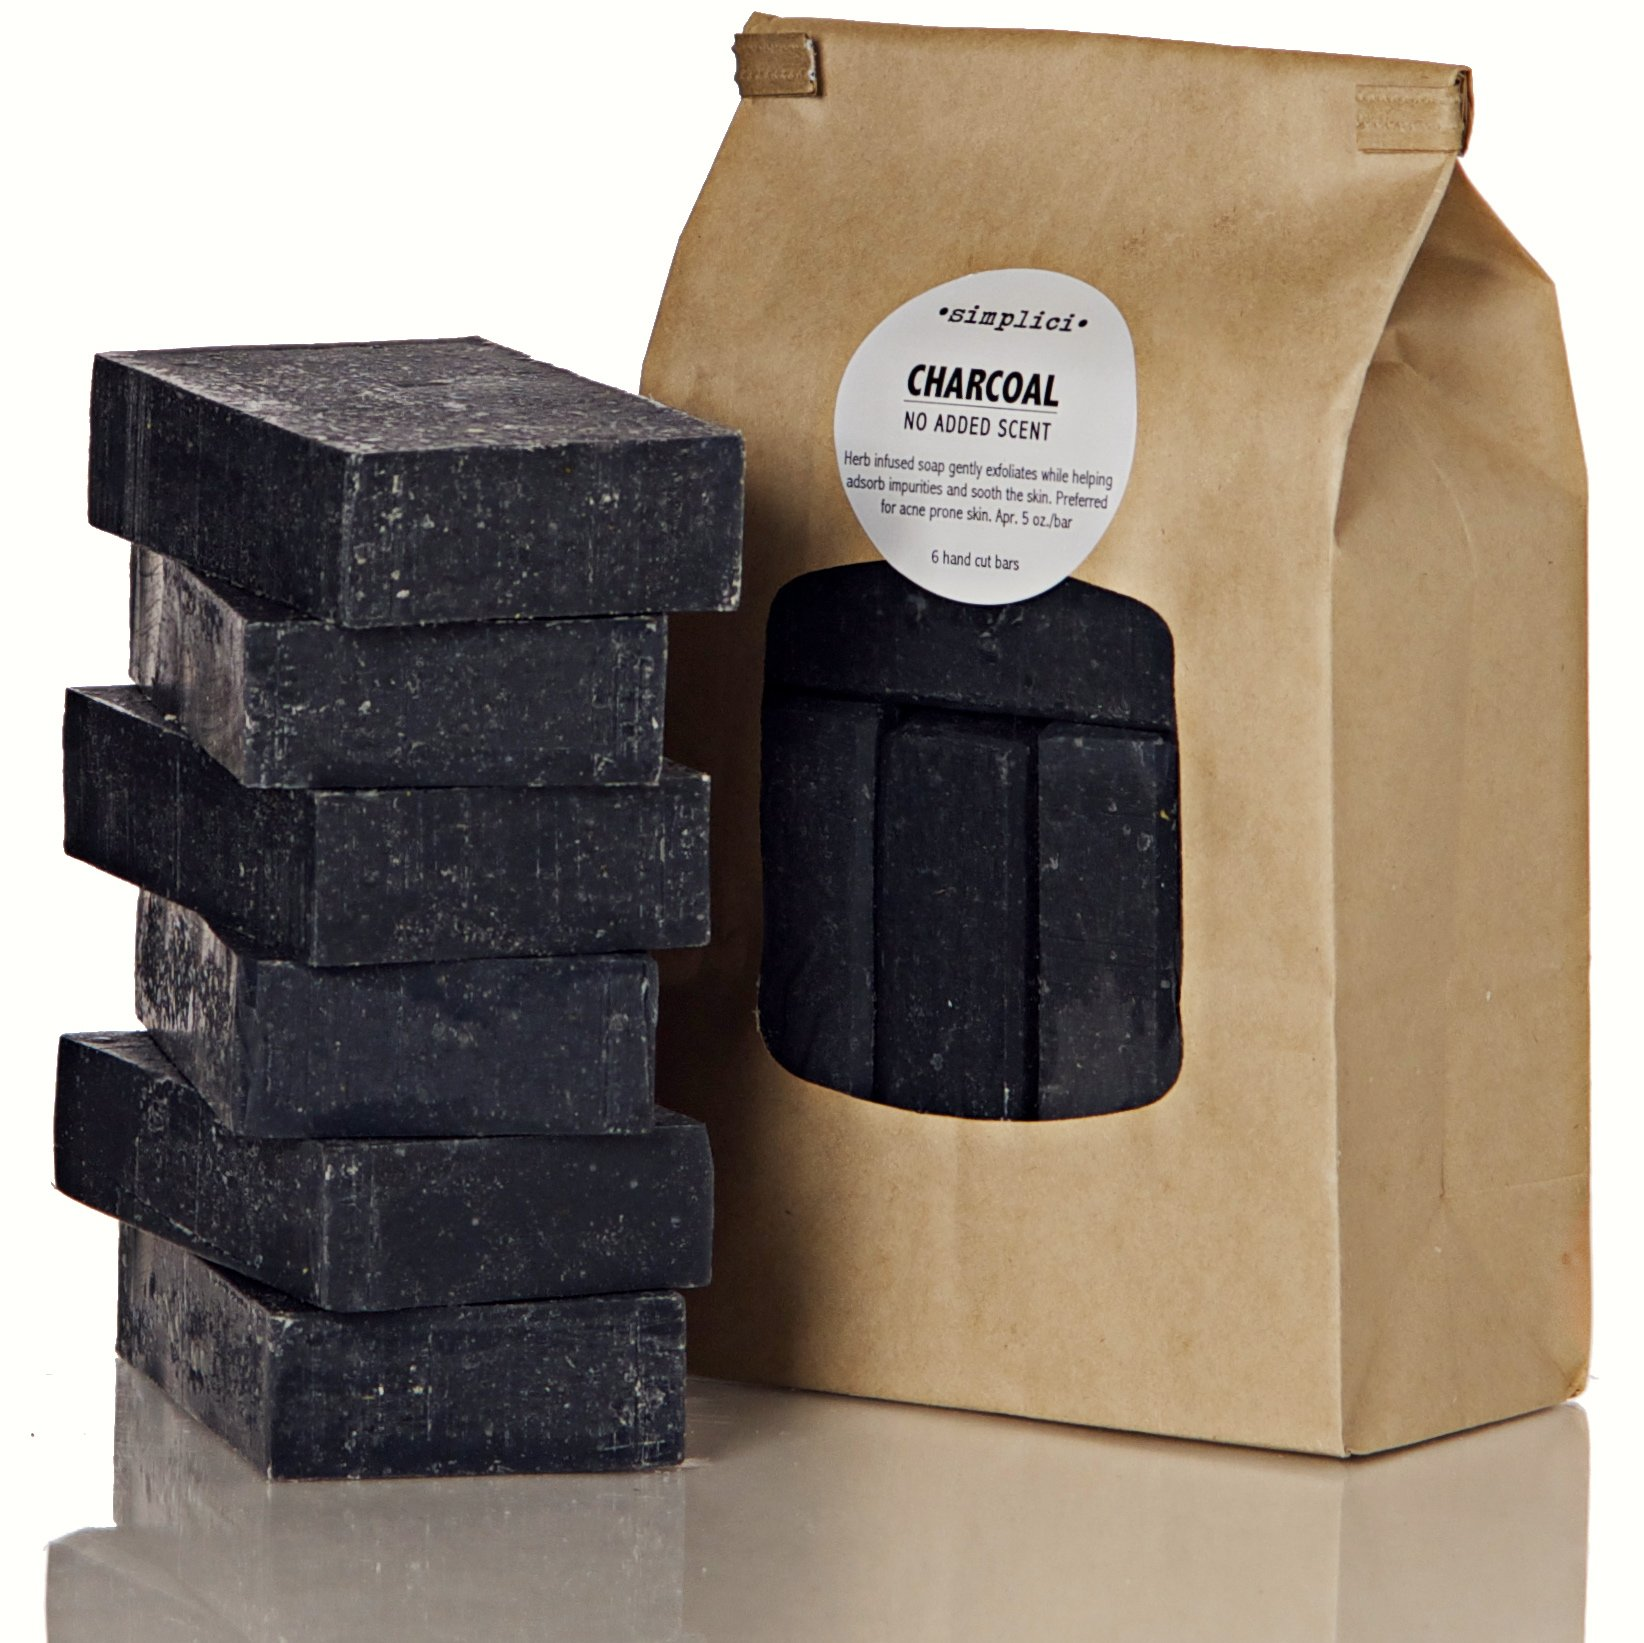 Simplici Activated Charcoal Unscented Bar Soap. Bulk 6 Pack. Palm Oil Free. With 15% Coconut Oil. Acne, Eczema, Psoriasis Safe. Body Wash For Oily Skin - Face, Facial, Hand. Black, Lye Soap 5 Oz Bars. by Simplici (Image #1)